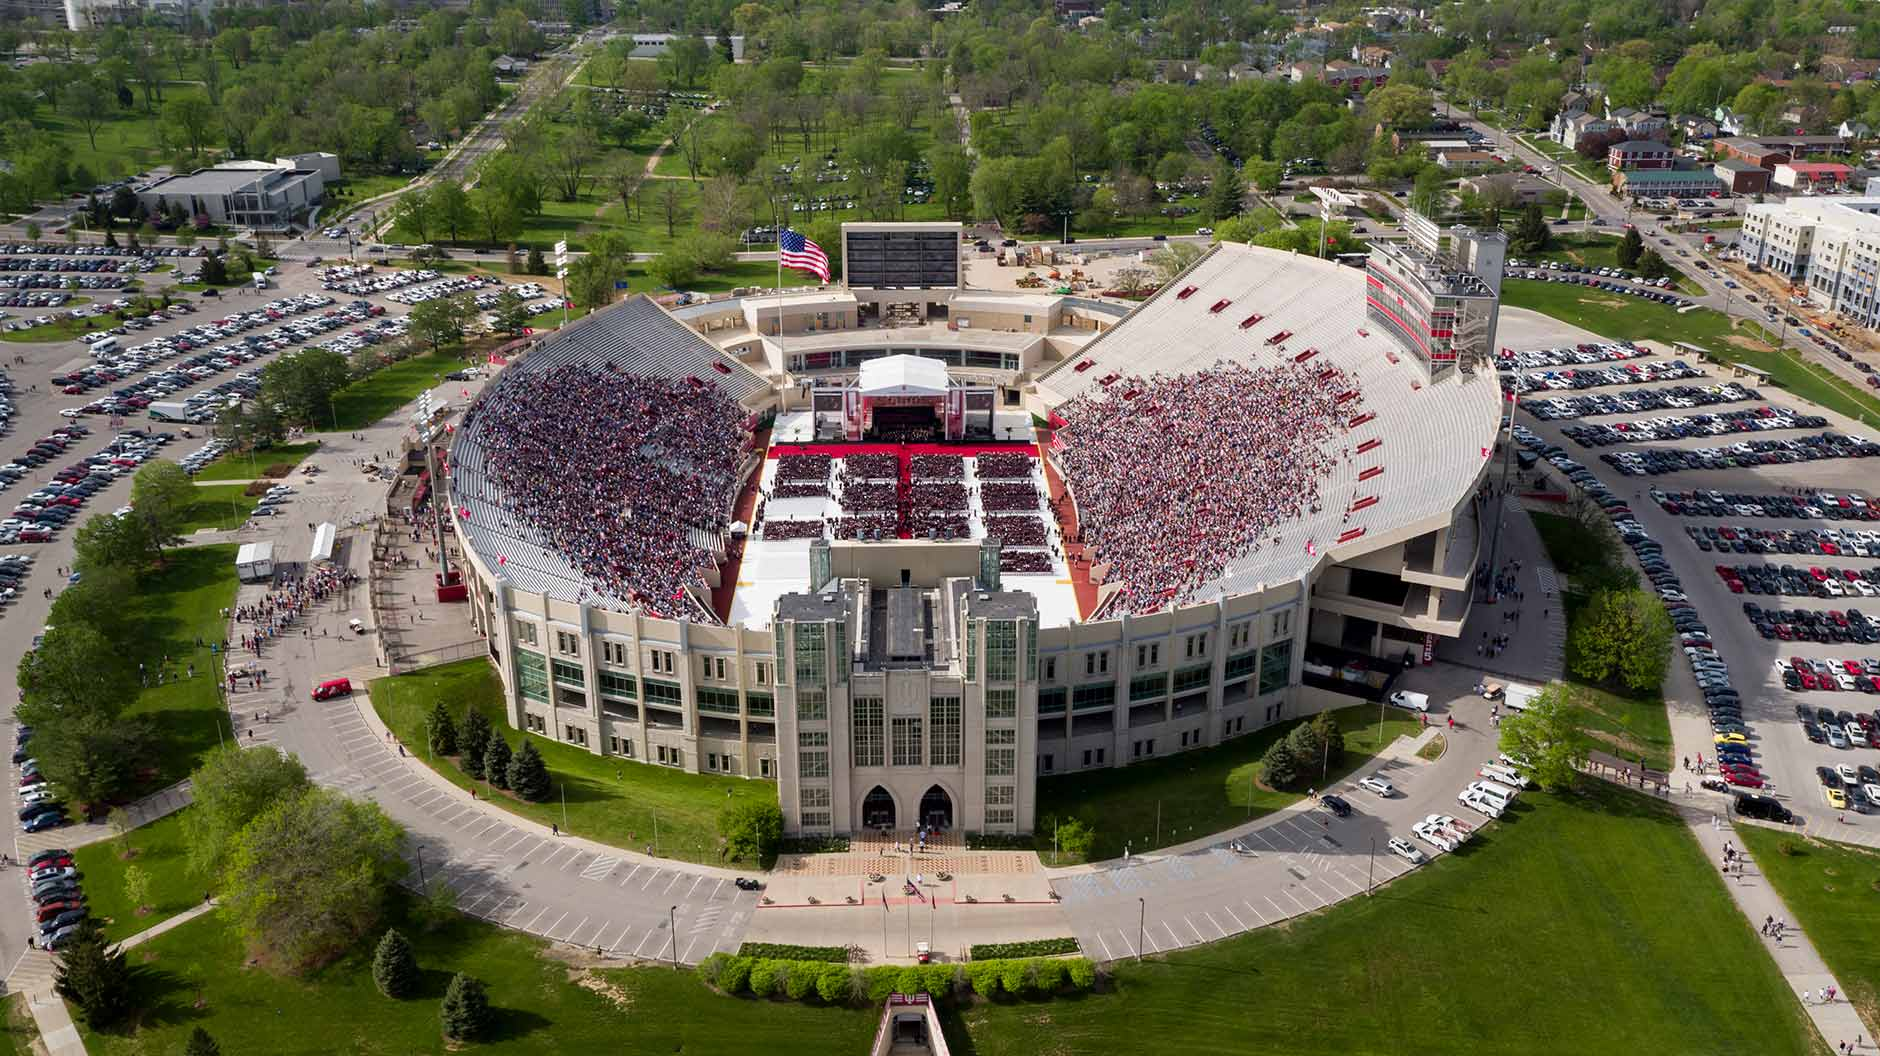 Graduates file into seats during the processional of the Indiana University Bloomington Undergraduate Commencement in Memorial Stadium on Saturday, May 5, 2018. (James Brosher/Indiana University)